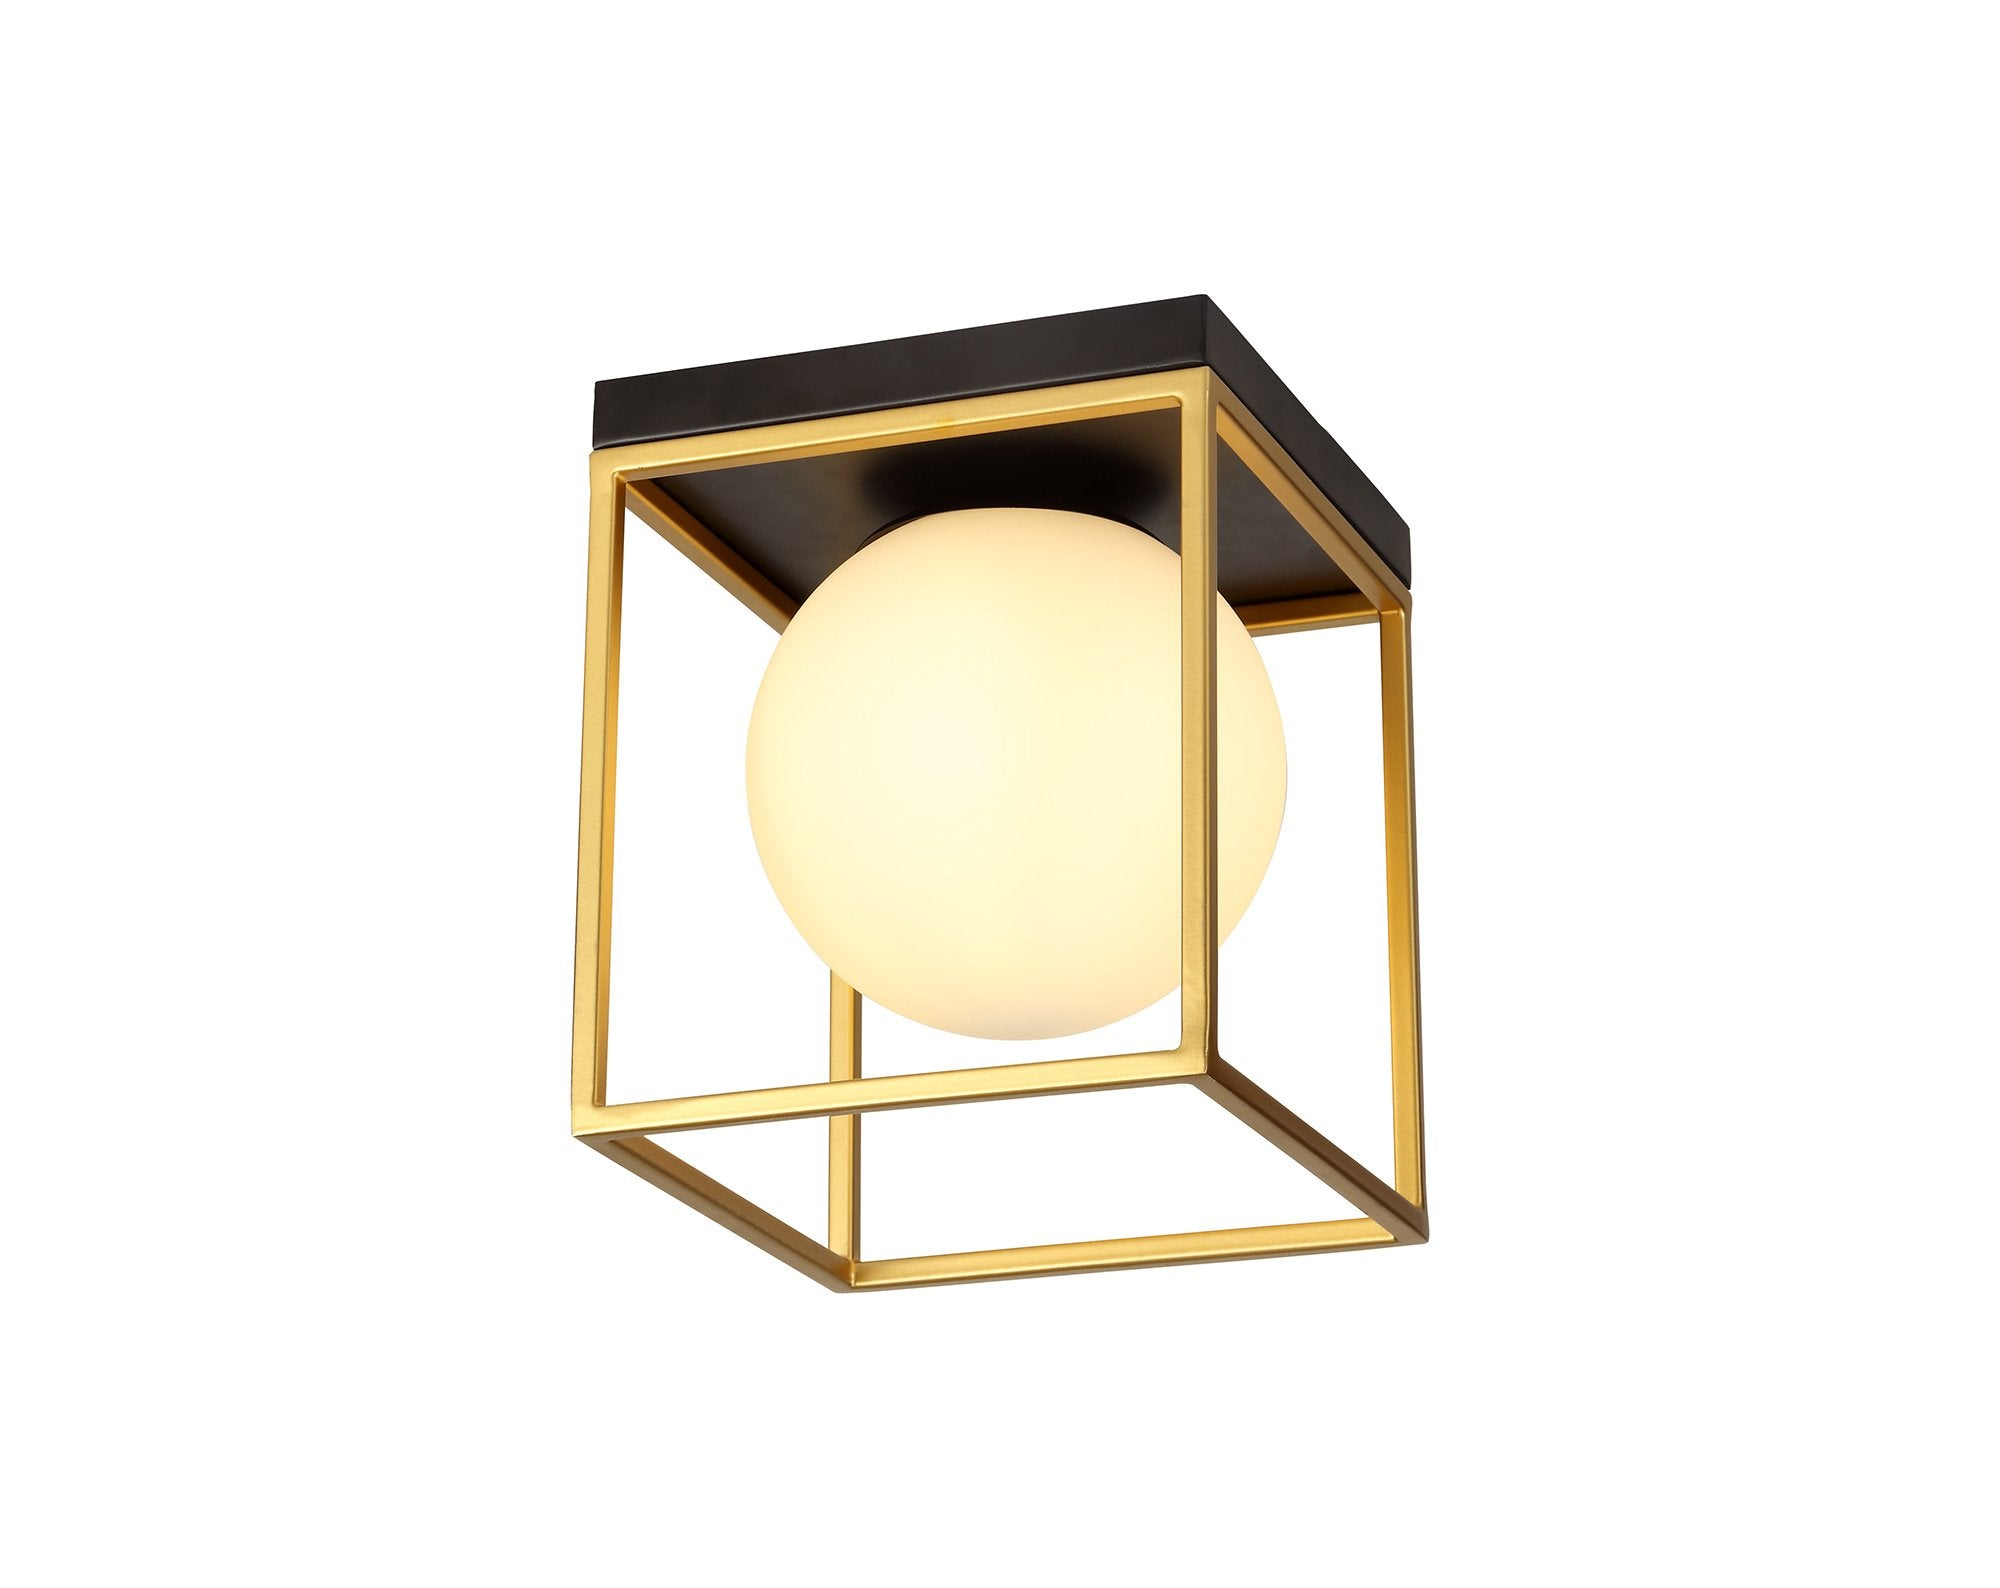 HELENA Square Ceiling Flush, 1 Light E14, Matt Black/Painted Gold